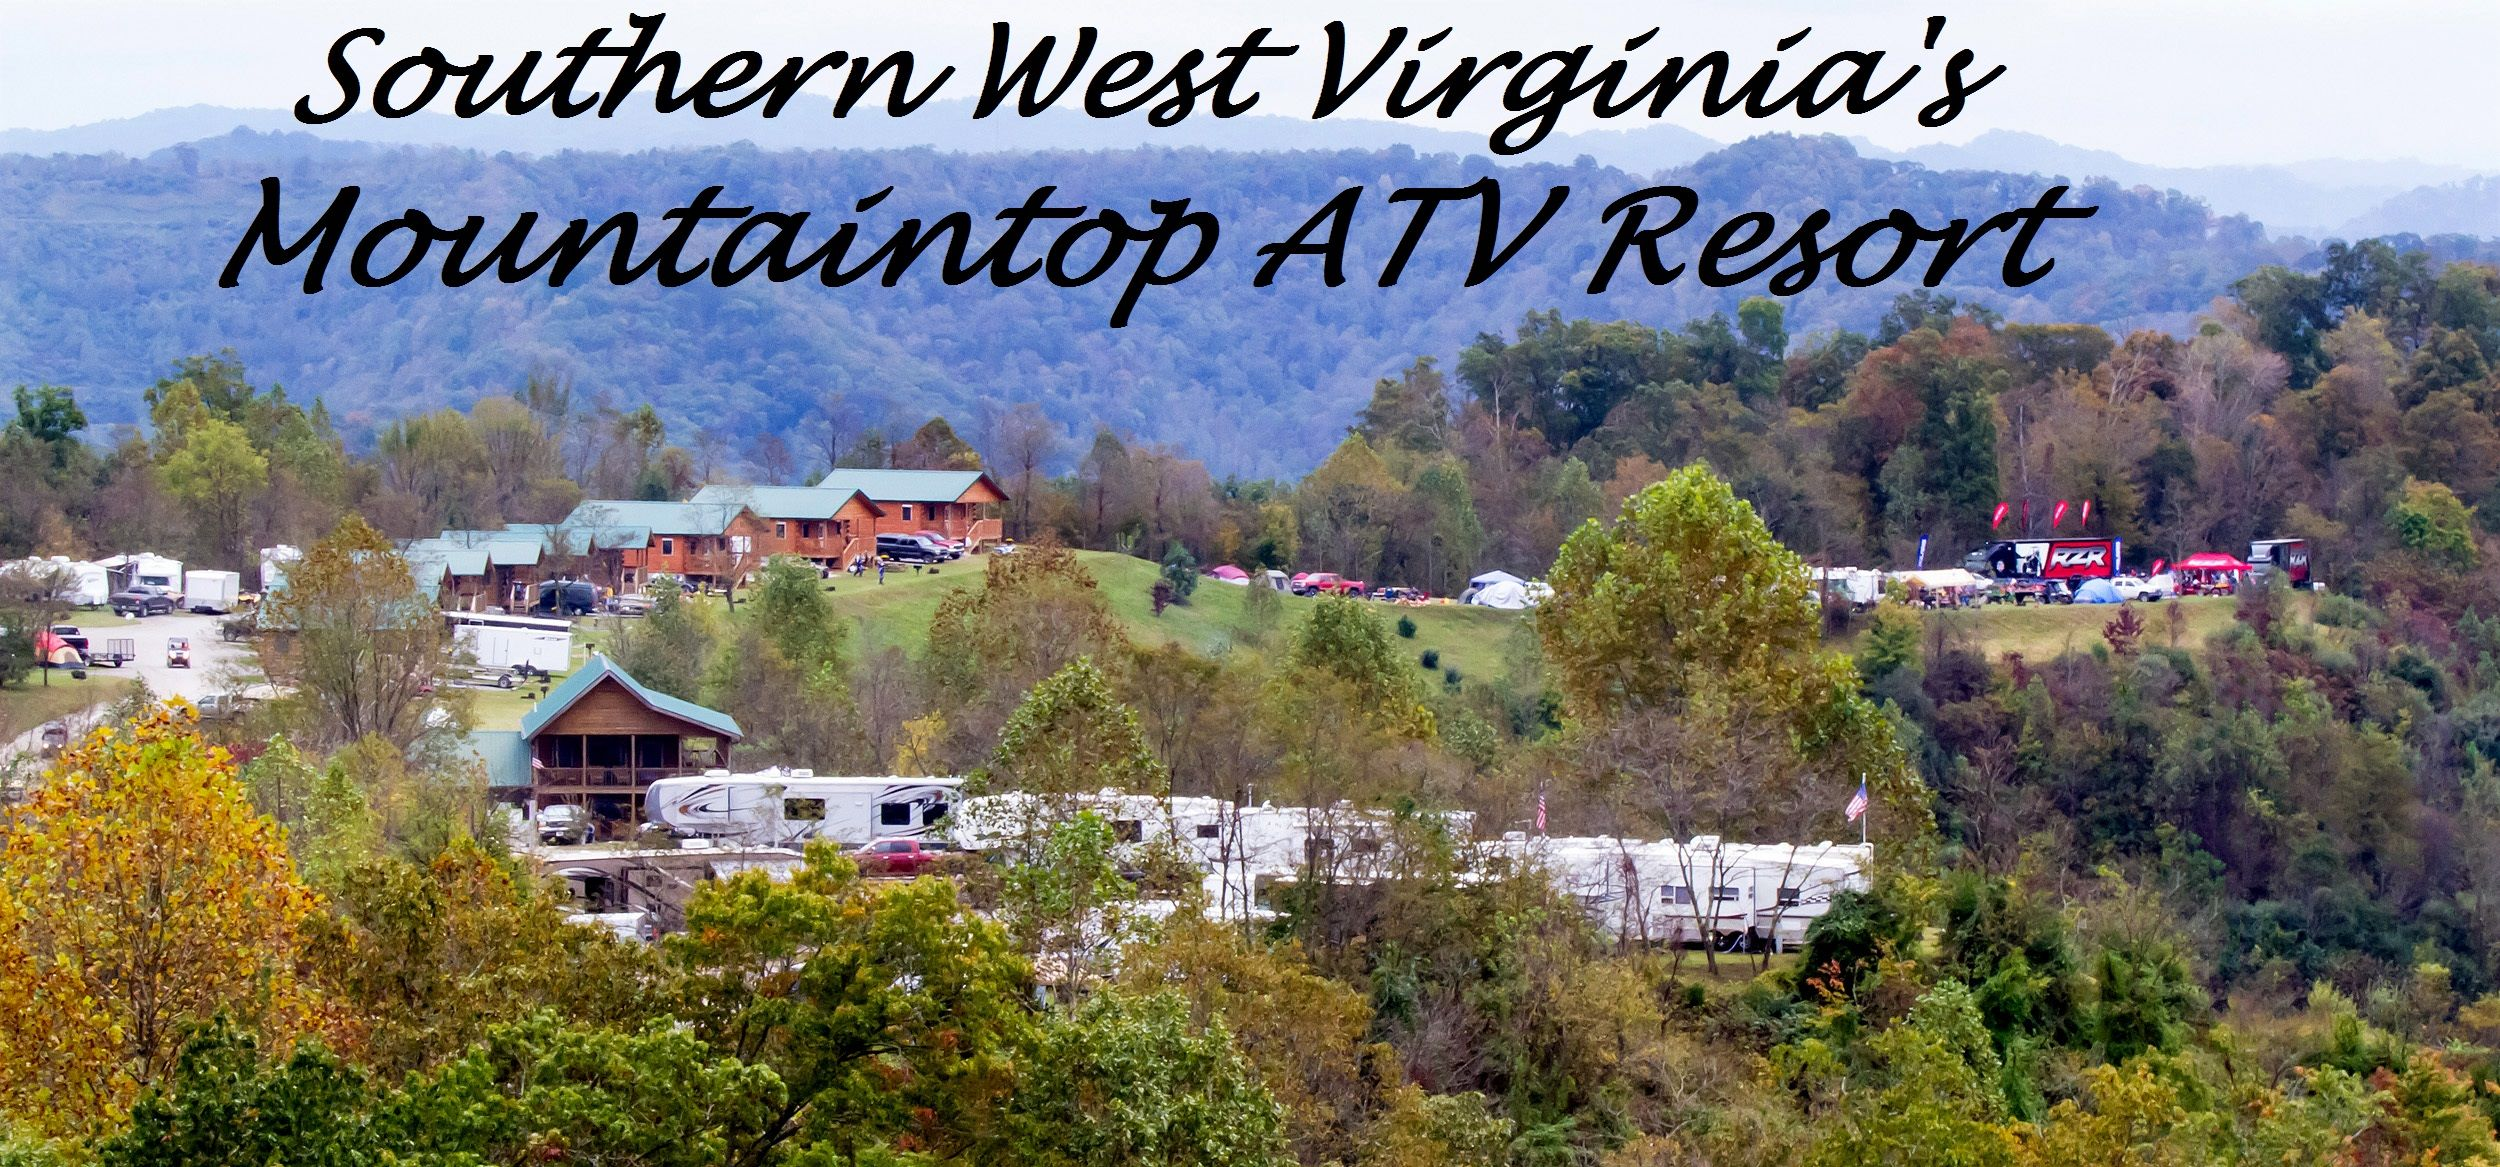 Atv Sxs Illustrated Along With Twin Hollow Campground And Hatfield Mccoy Trails Announce An Official Ride April 28 30 2016 West Virginia Hatfield Campground